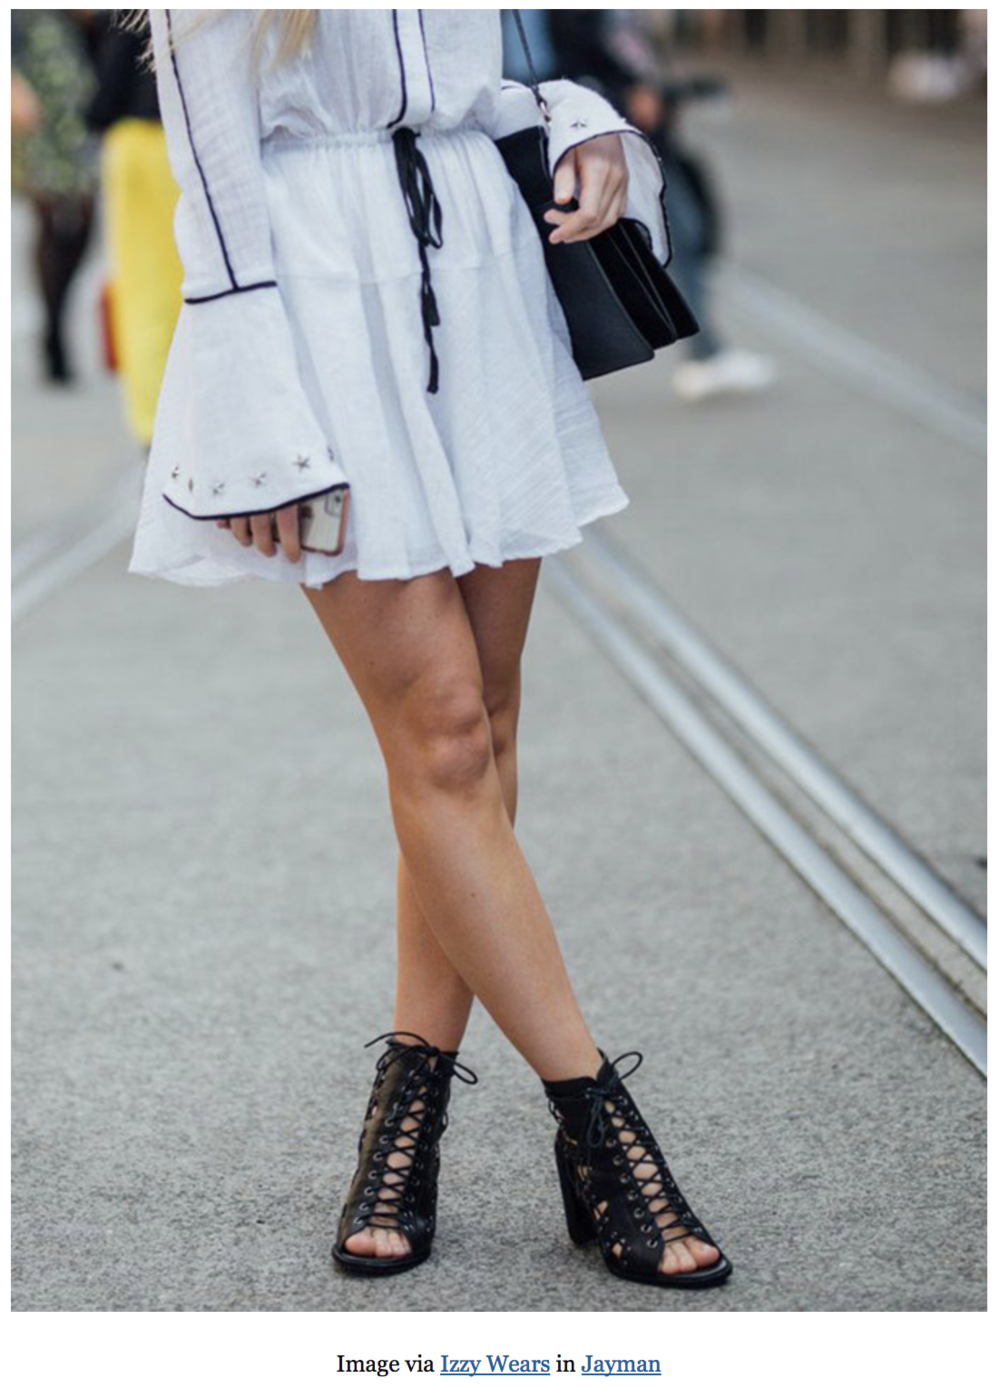 Jayman Mollini Black Lace Up Heel | Izzy Wears Blog